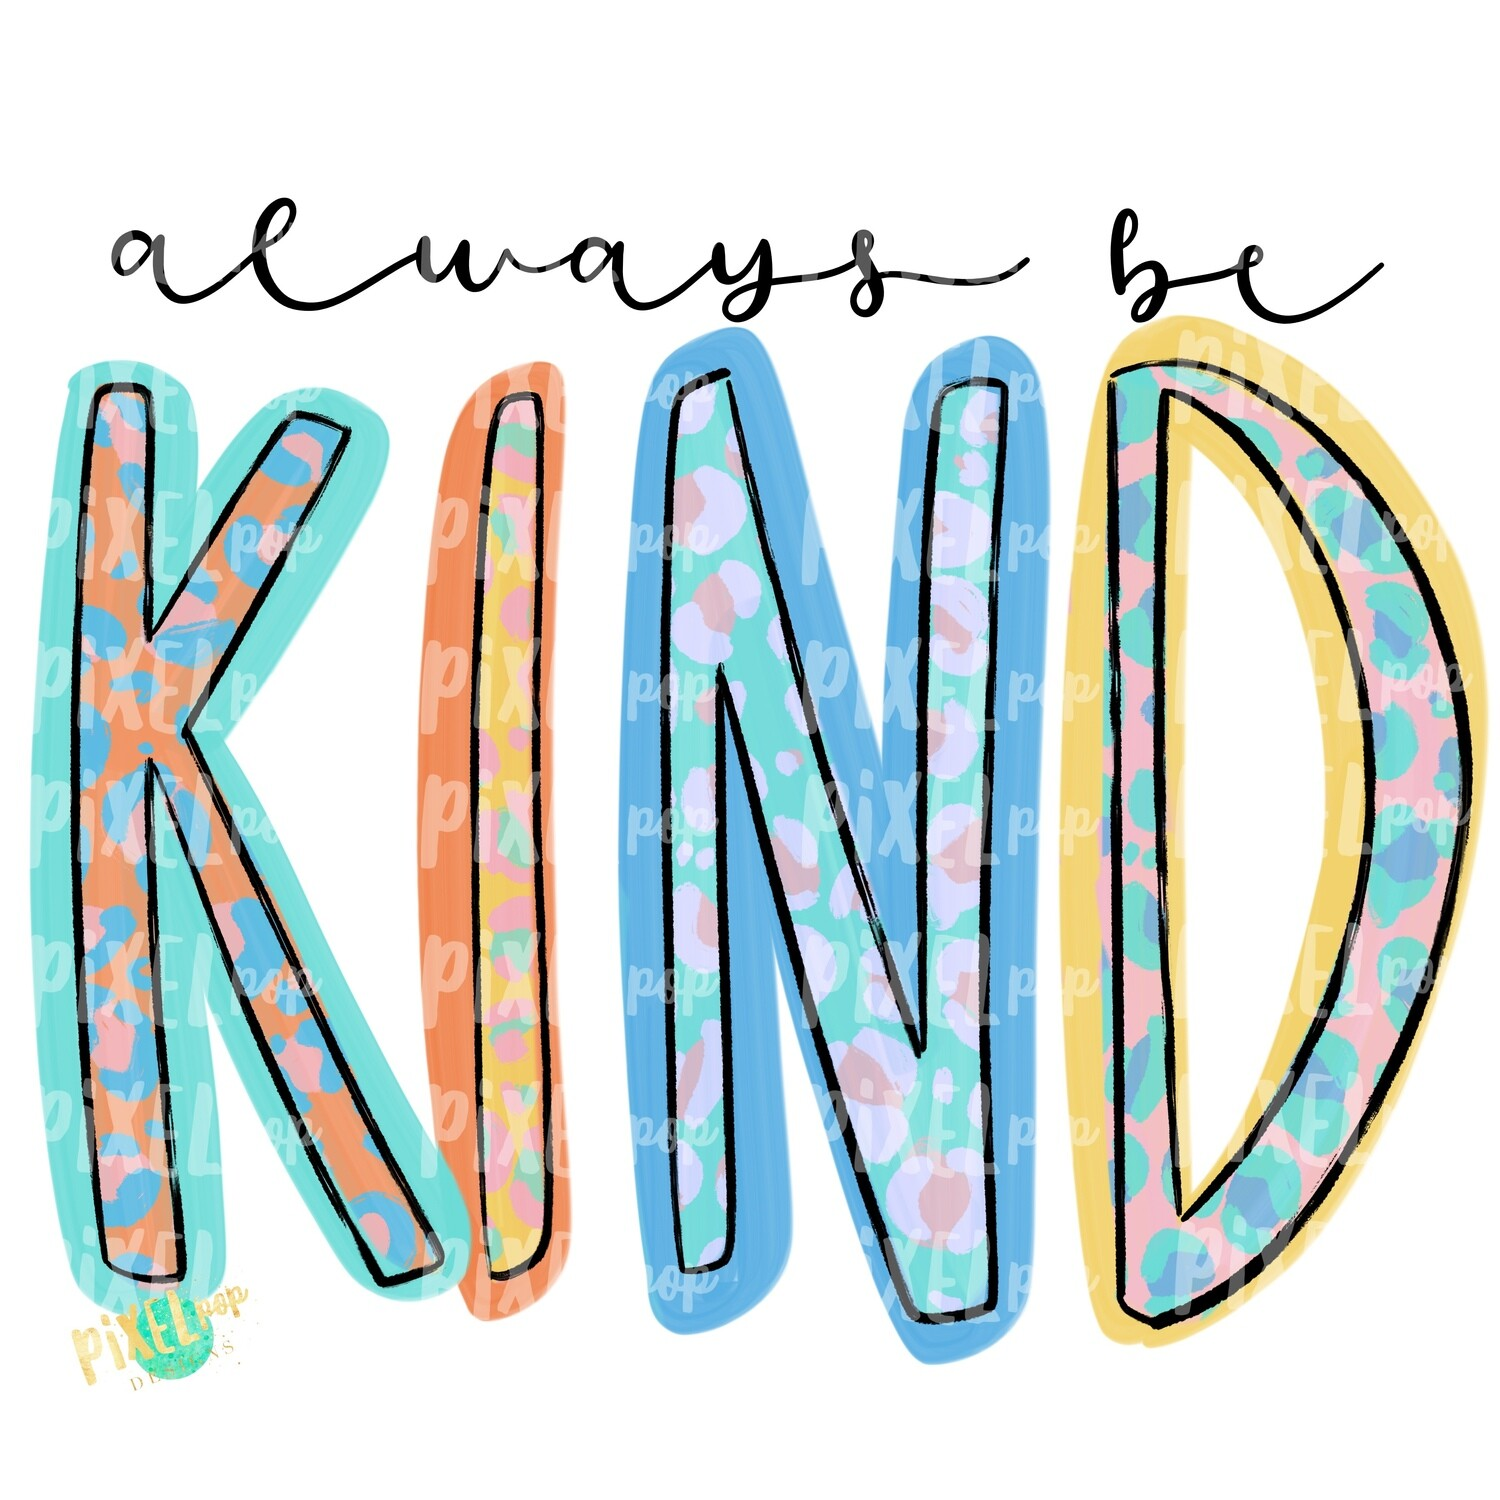 Always Be Kind Leopard PNG | Be Kind | Spread Kindness | Positivity Design | Sicker Art | Tumbler Art | Waterslide Art | Inspirational Art